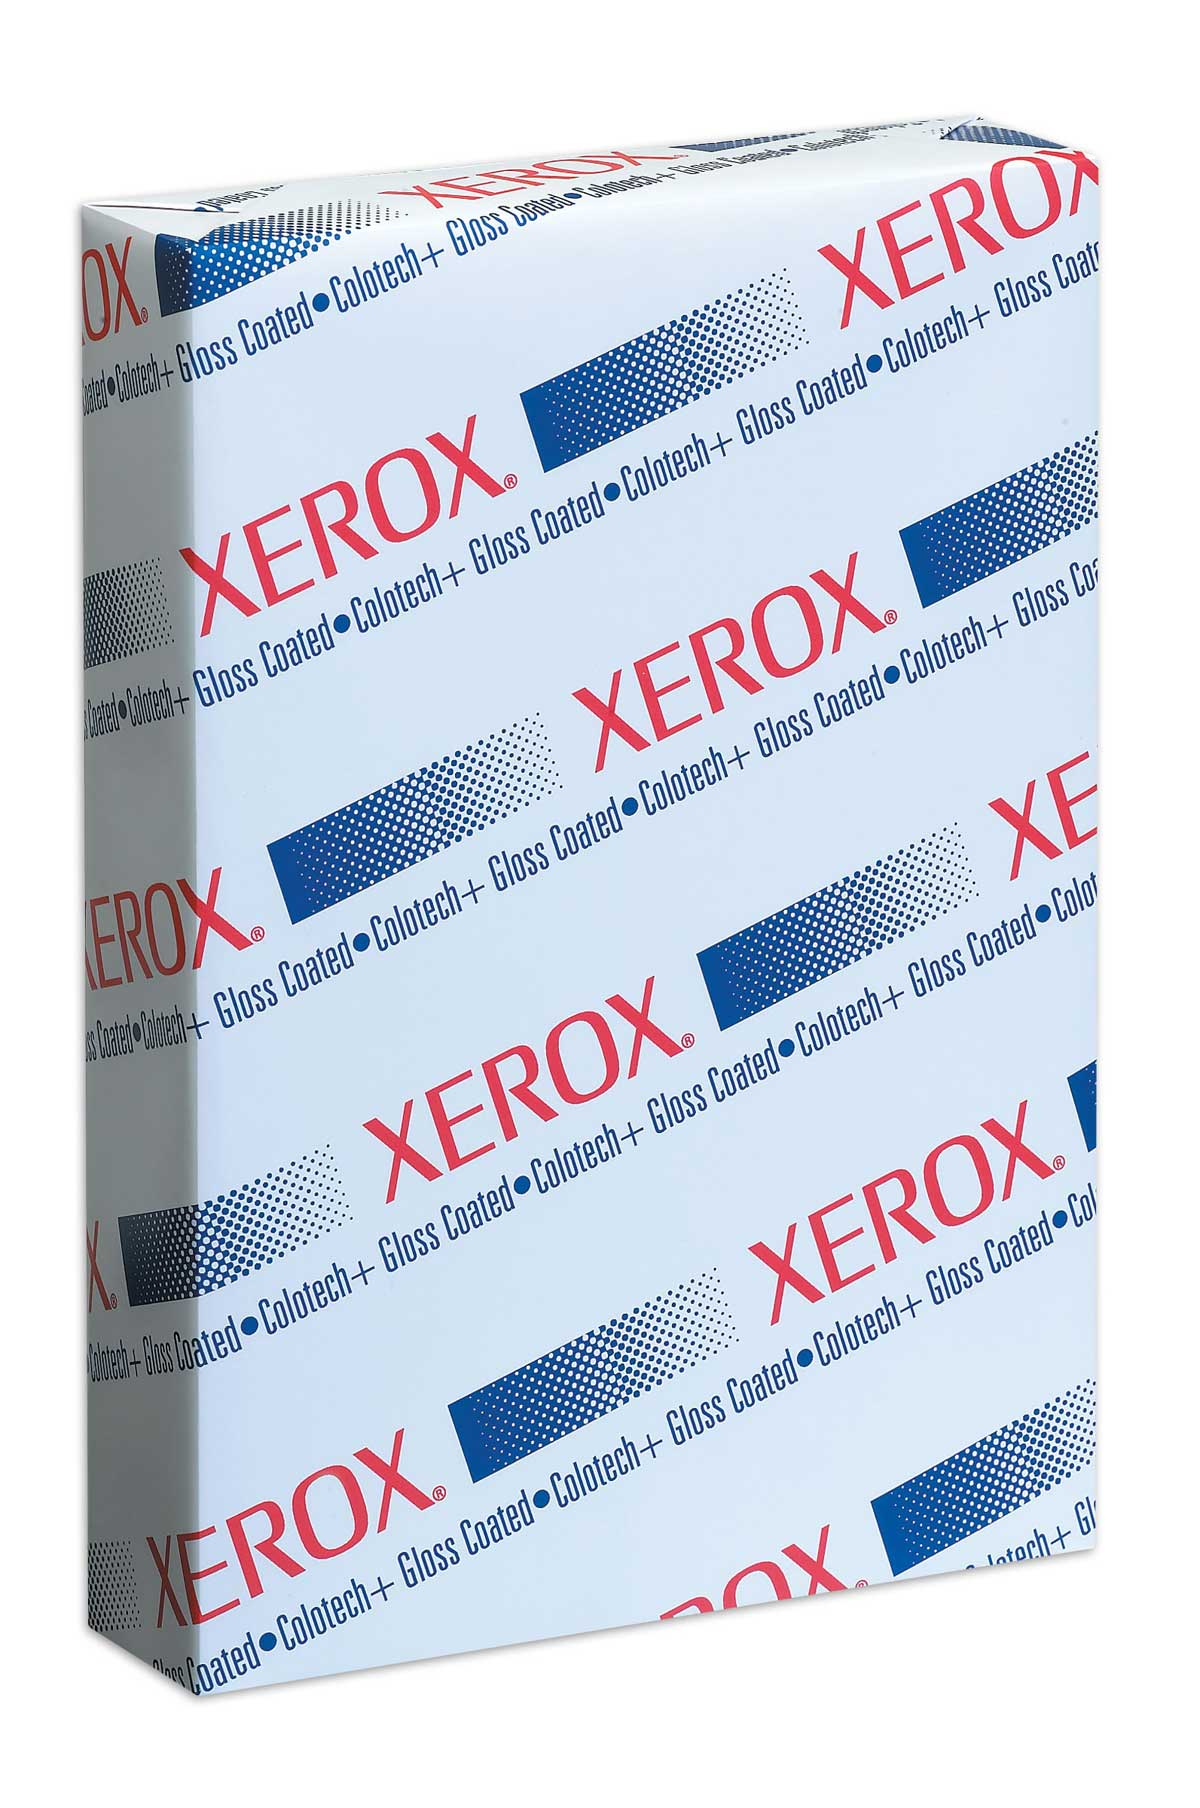 Бумага Colotech+ Gloss Coated SRA3 280гр./м2., 200листов (003R90353) XEROX - фото 1